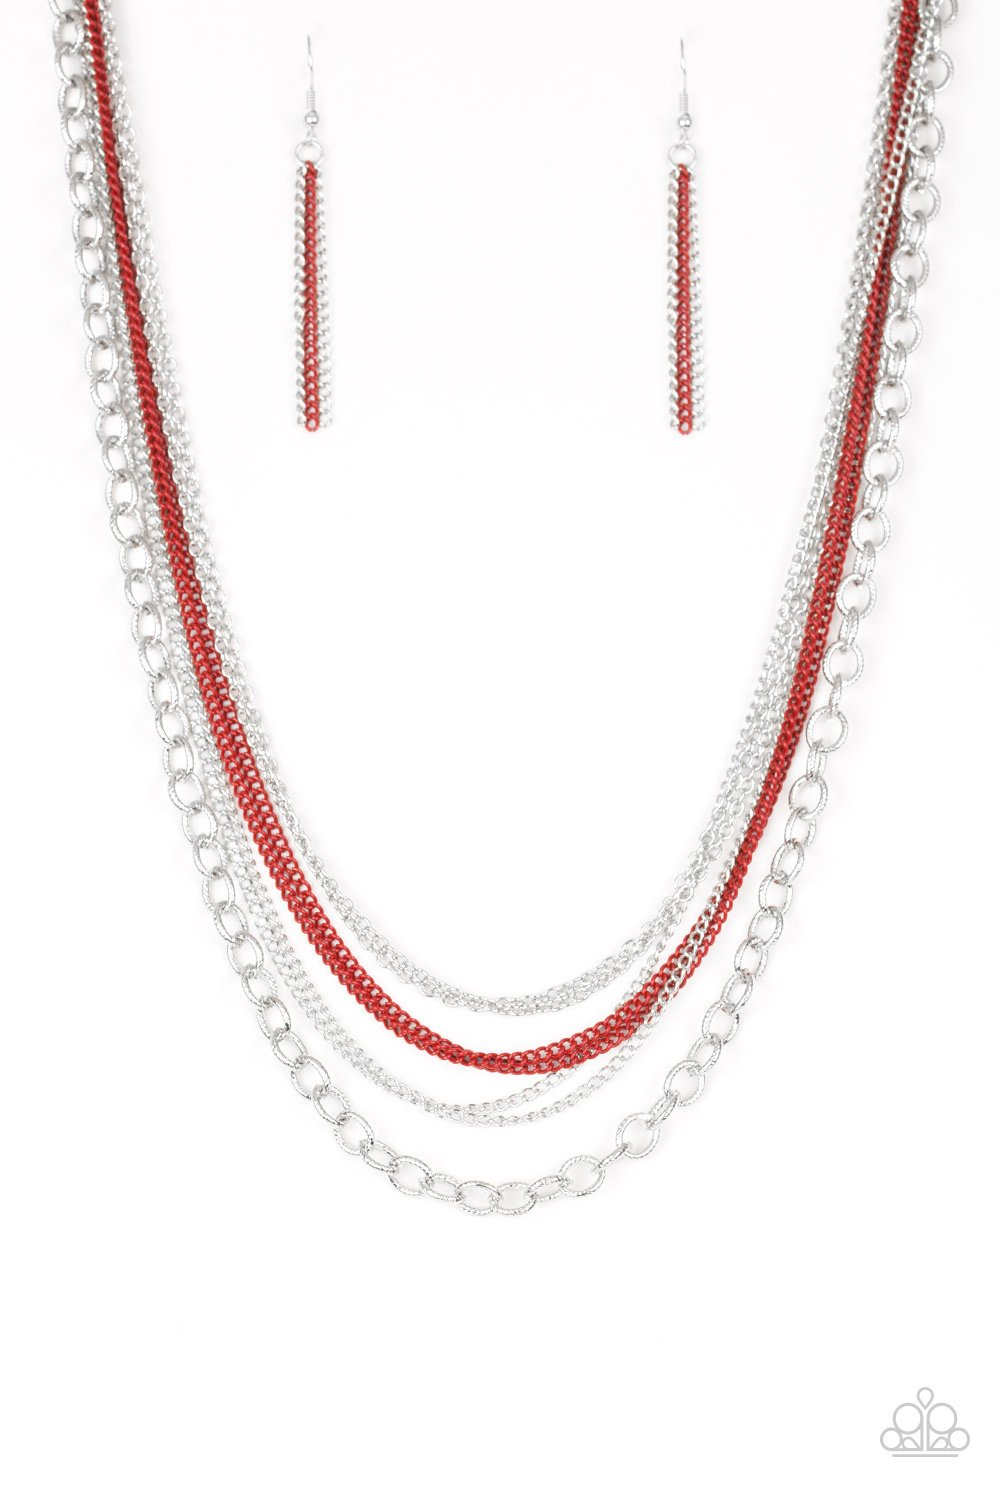 Intensely Industrial - red - Paparazzi necklace